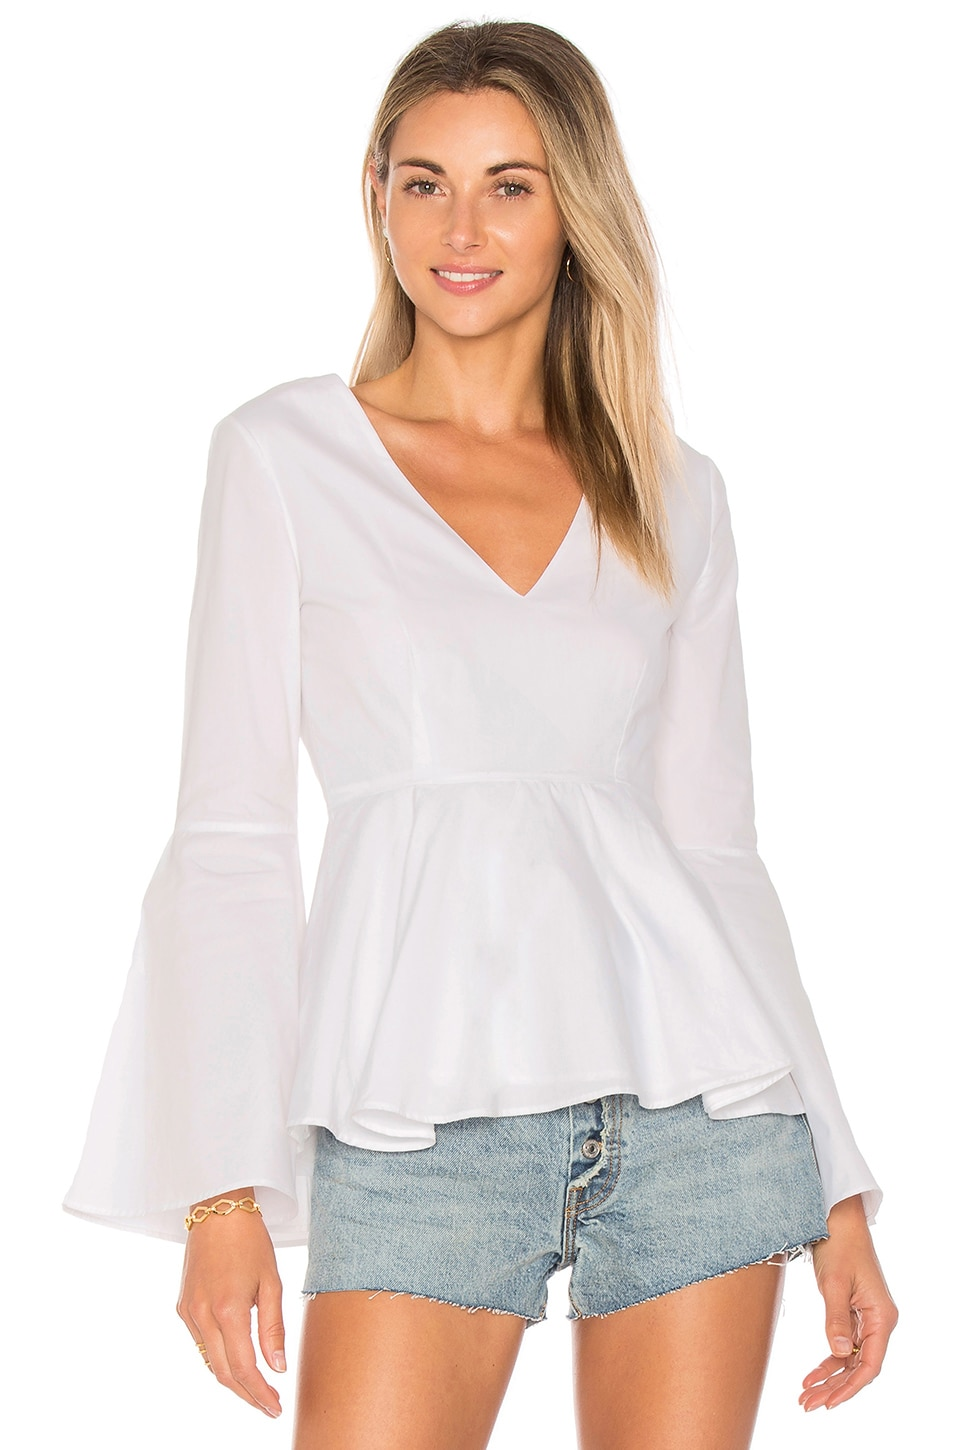 L'Academie x REVOLVE The Statement Top in White